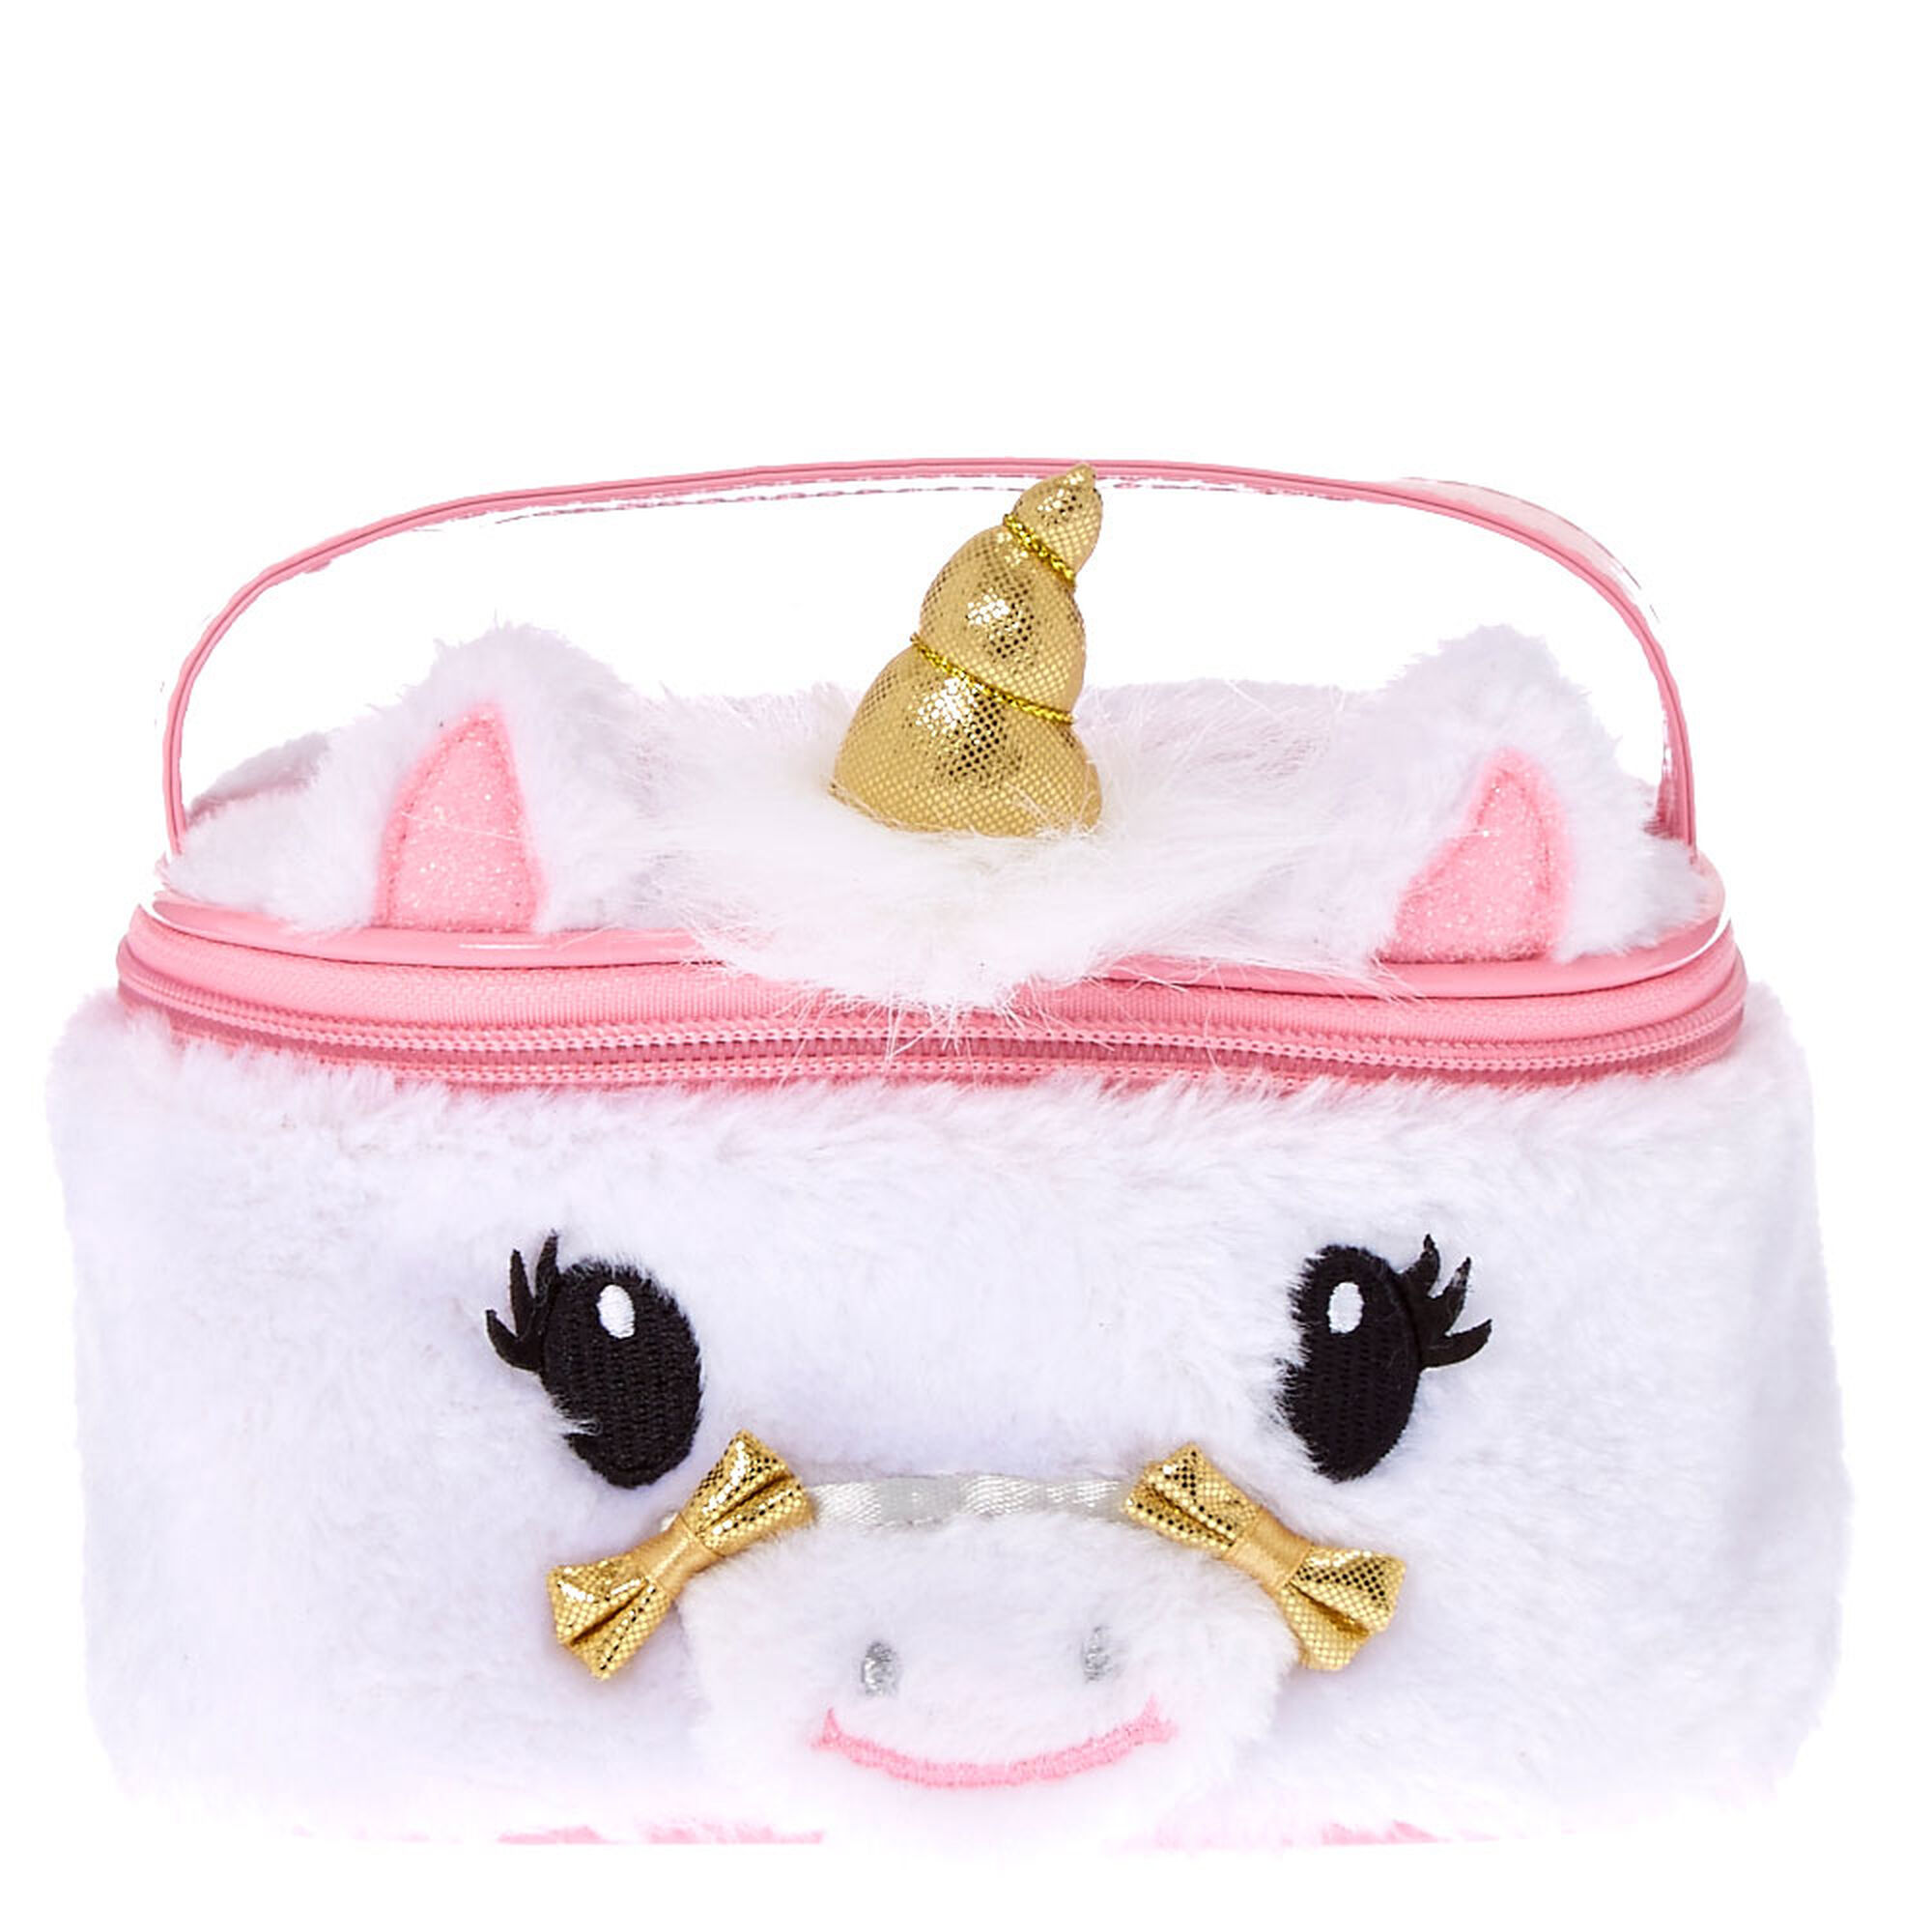 Believe In Your Dreams Unicorn Eye Mask 122730 likewise Rainbow Unicorn Earbuds And Winder 213465 html also Cat Canvas Unicorn Flower Backpack as well Pusheen Fancy Card in addition Jojo Siwa Signature Pastel Unicorn Hair Bow 212735. on pusheen unicorn bag